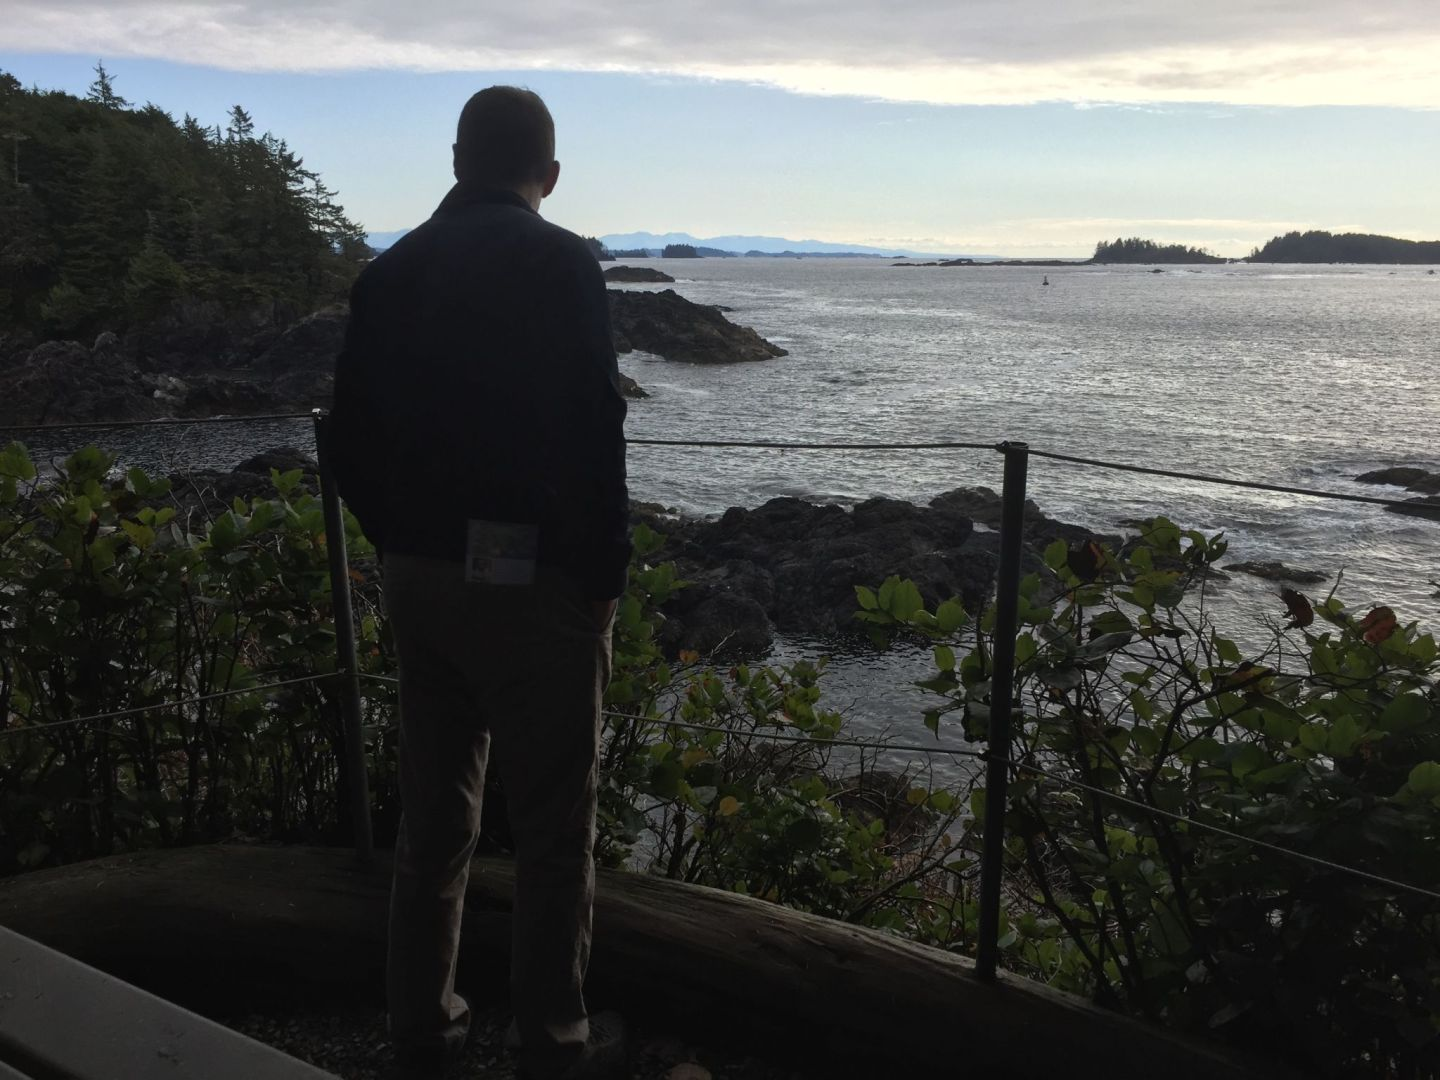 Views on the Wild Pacific Trail, Vancouver Island